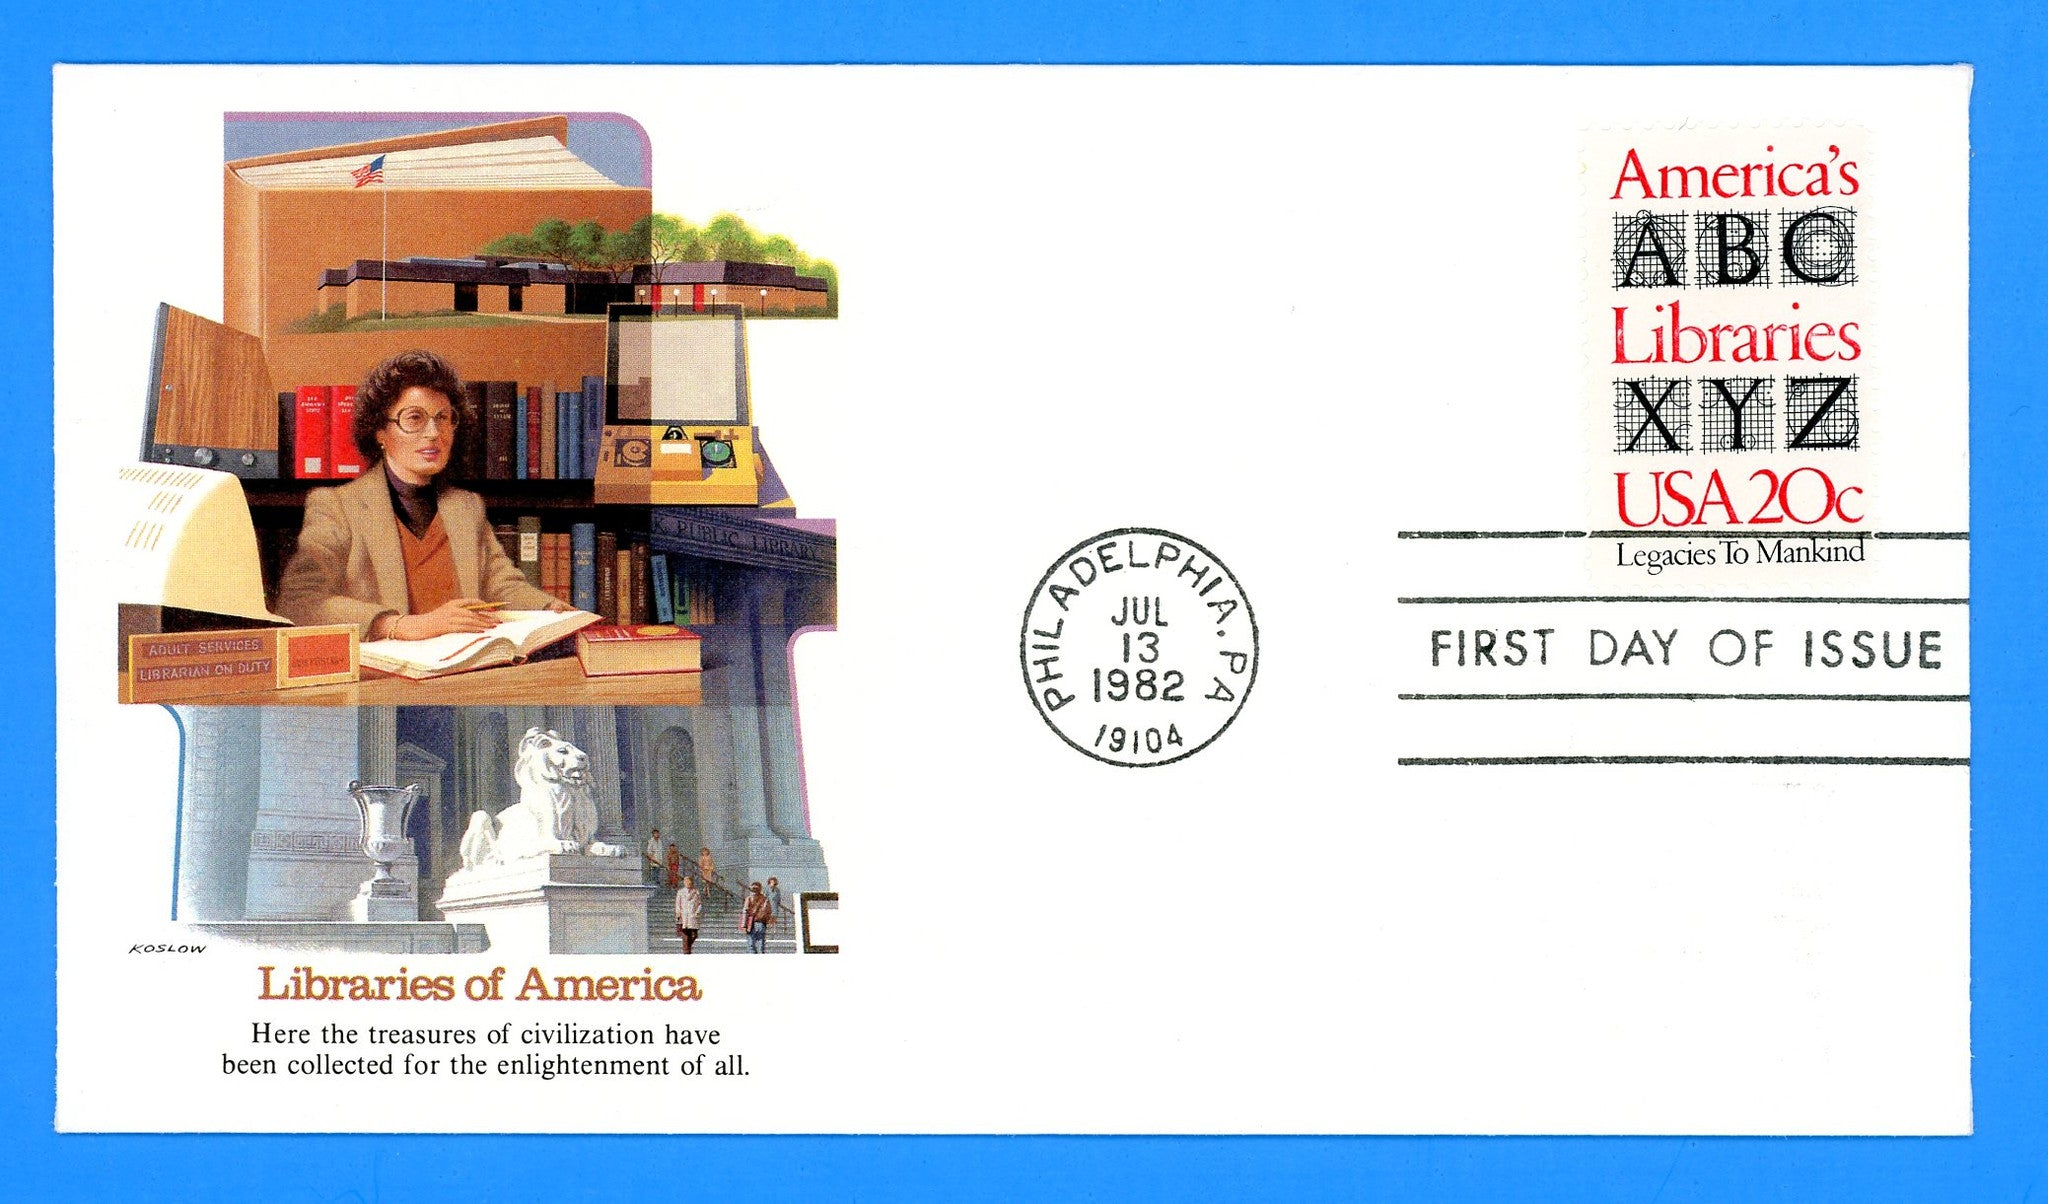 America's Libraries First Day Cover by Fleetwood